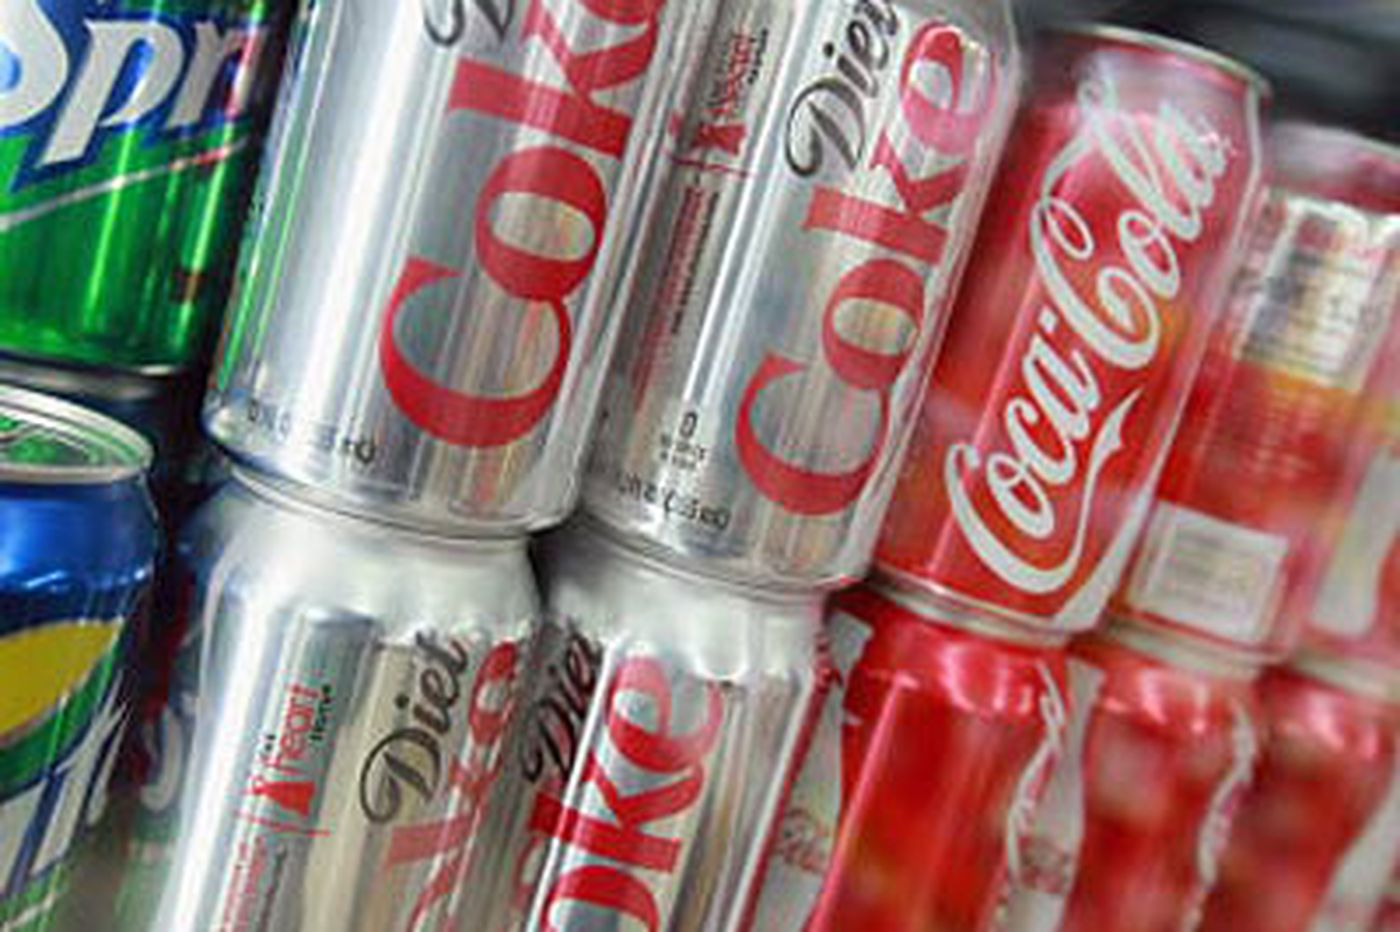 How health campaigns are shaking up the soda market